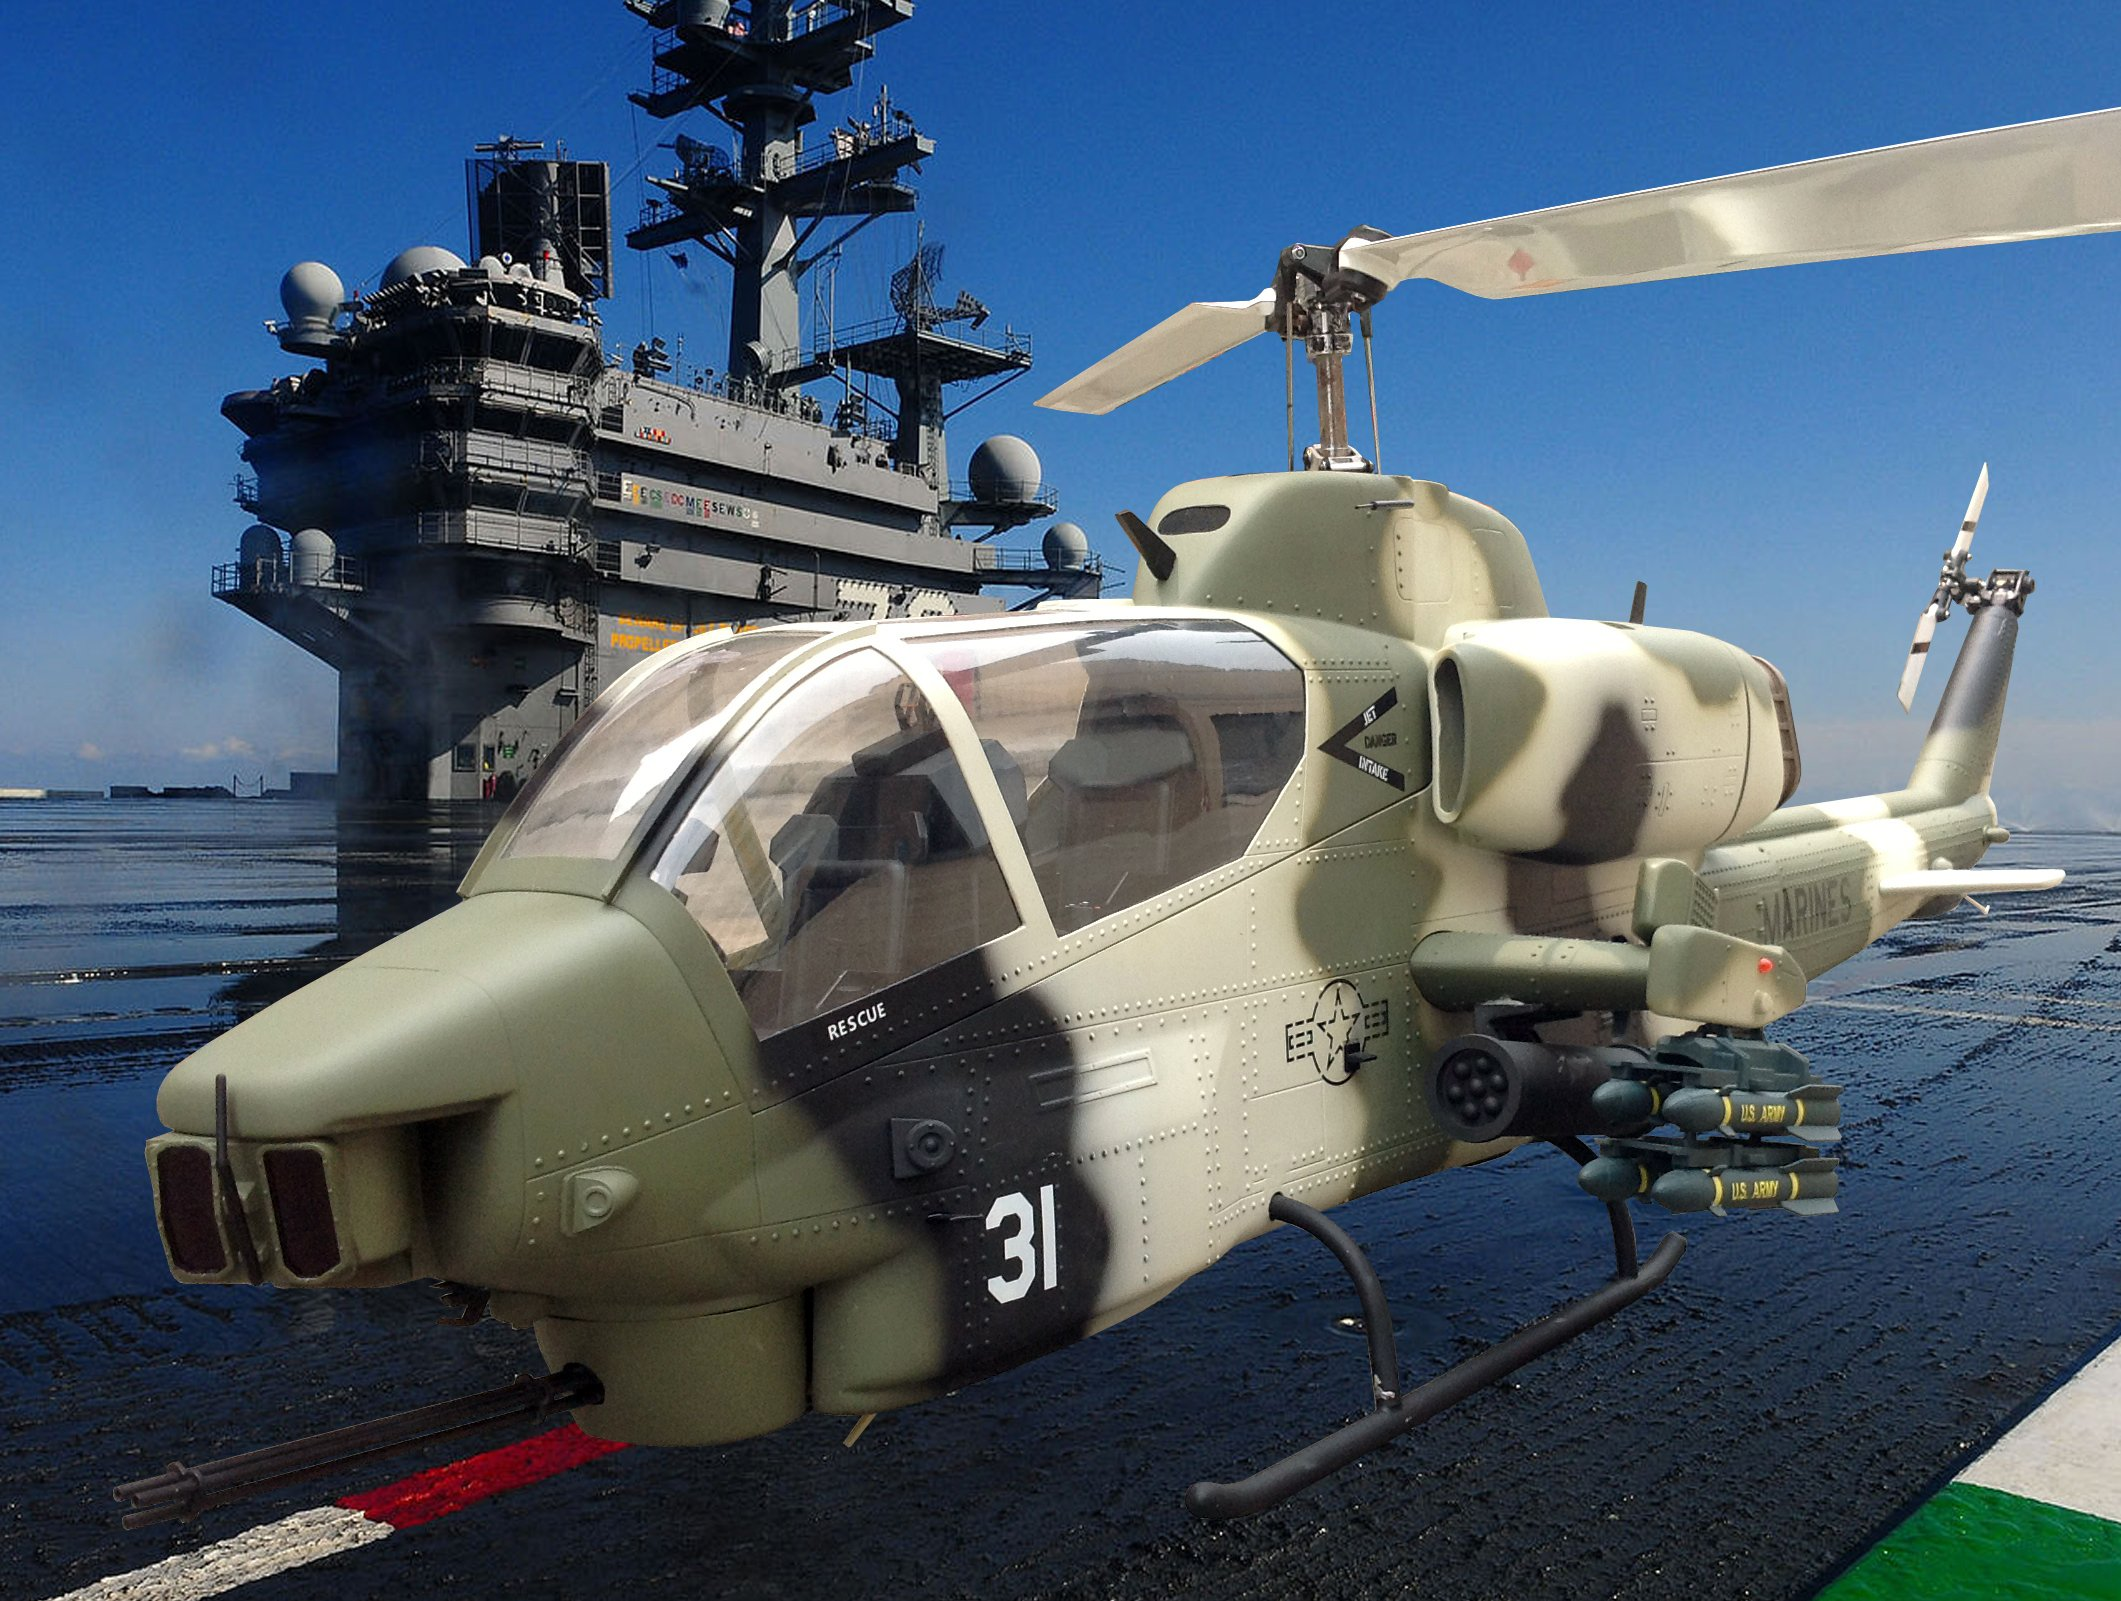 AH-1W SUPER COBRA attack helicopter military weapon aircraft (44 ...